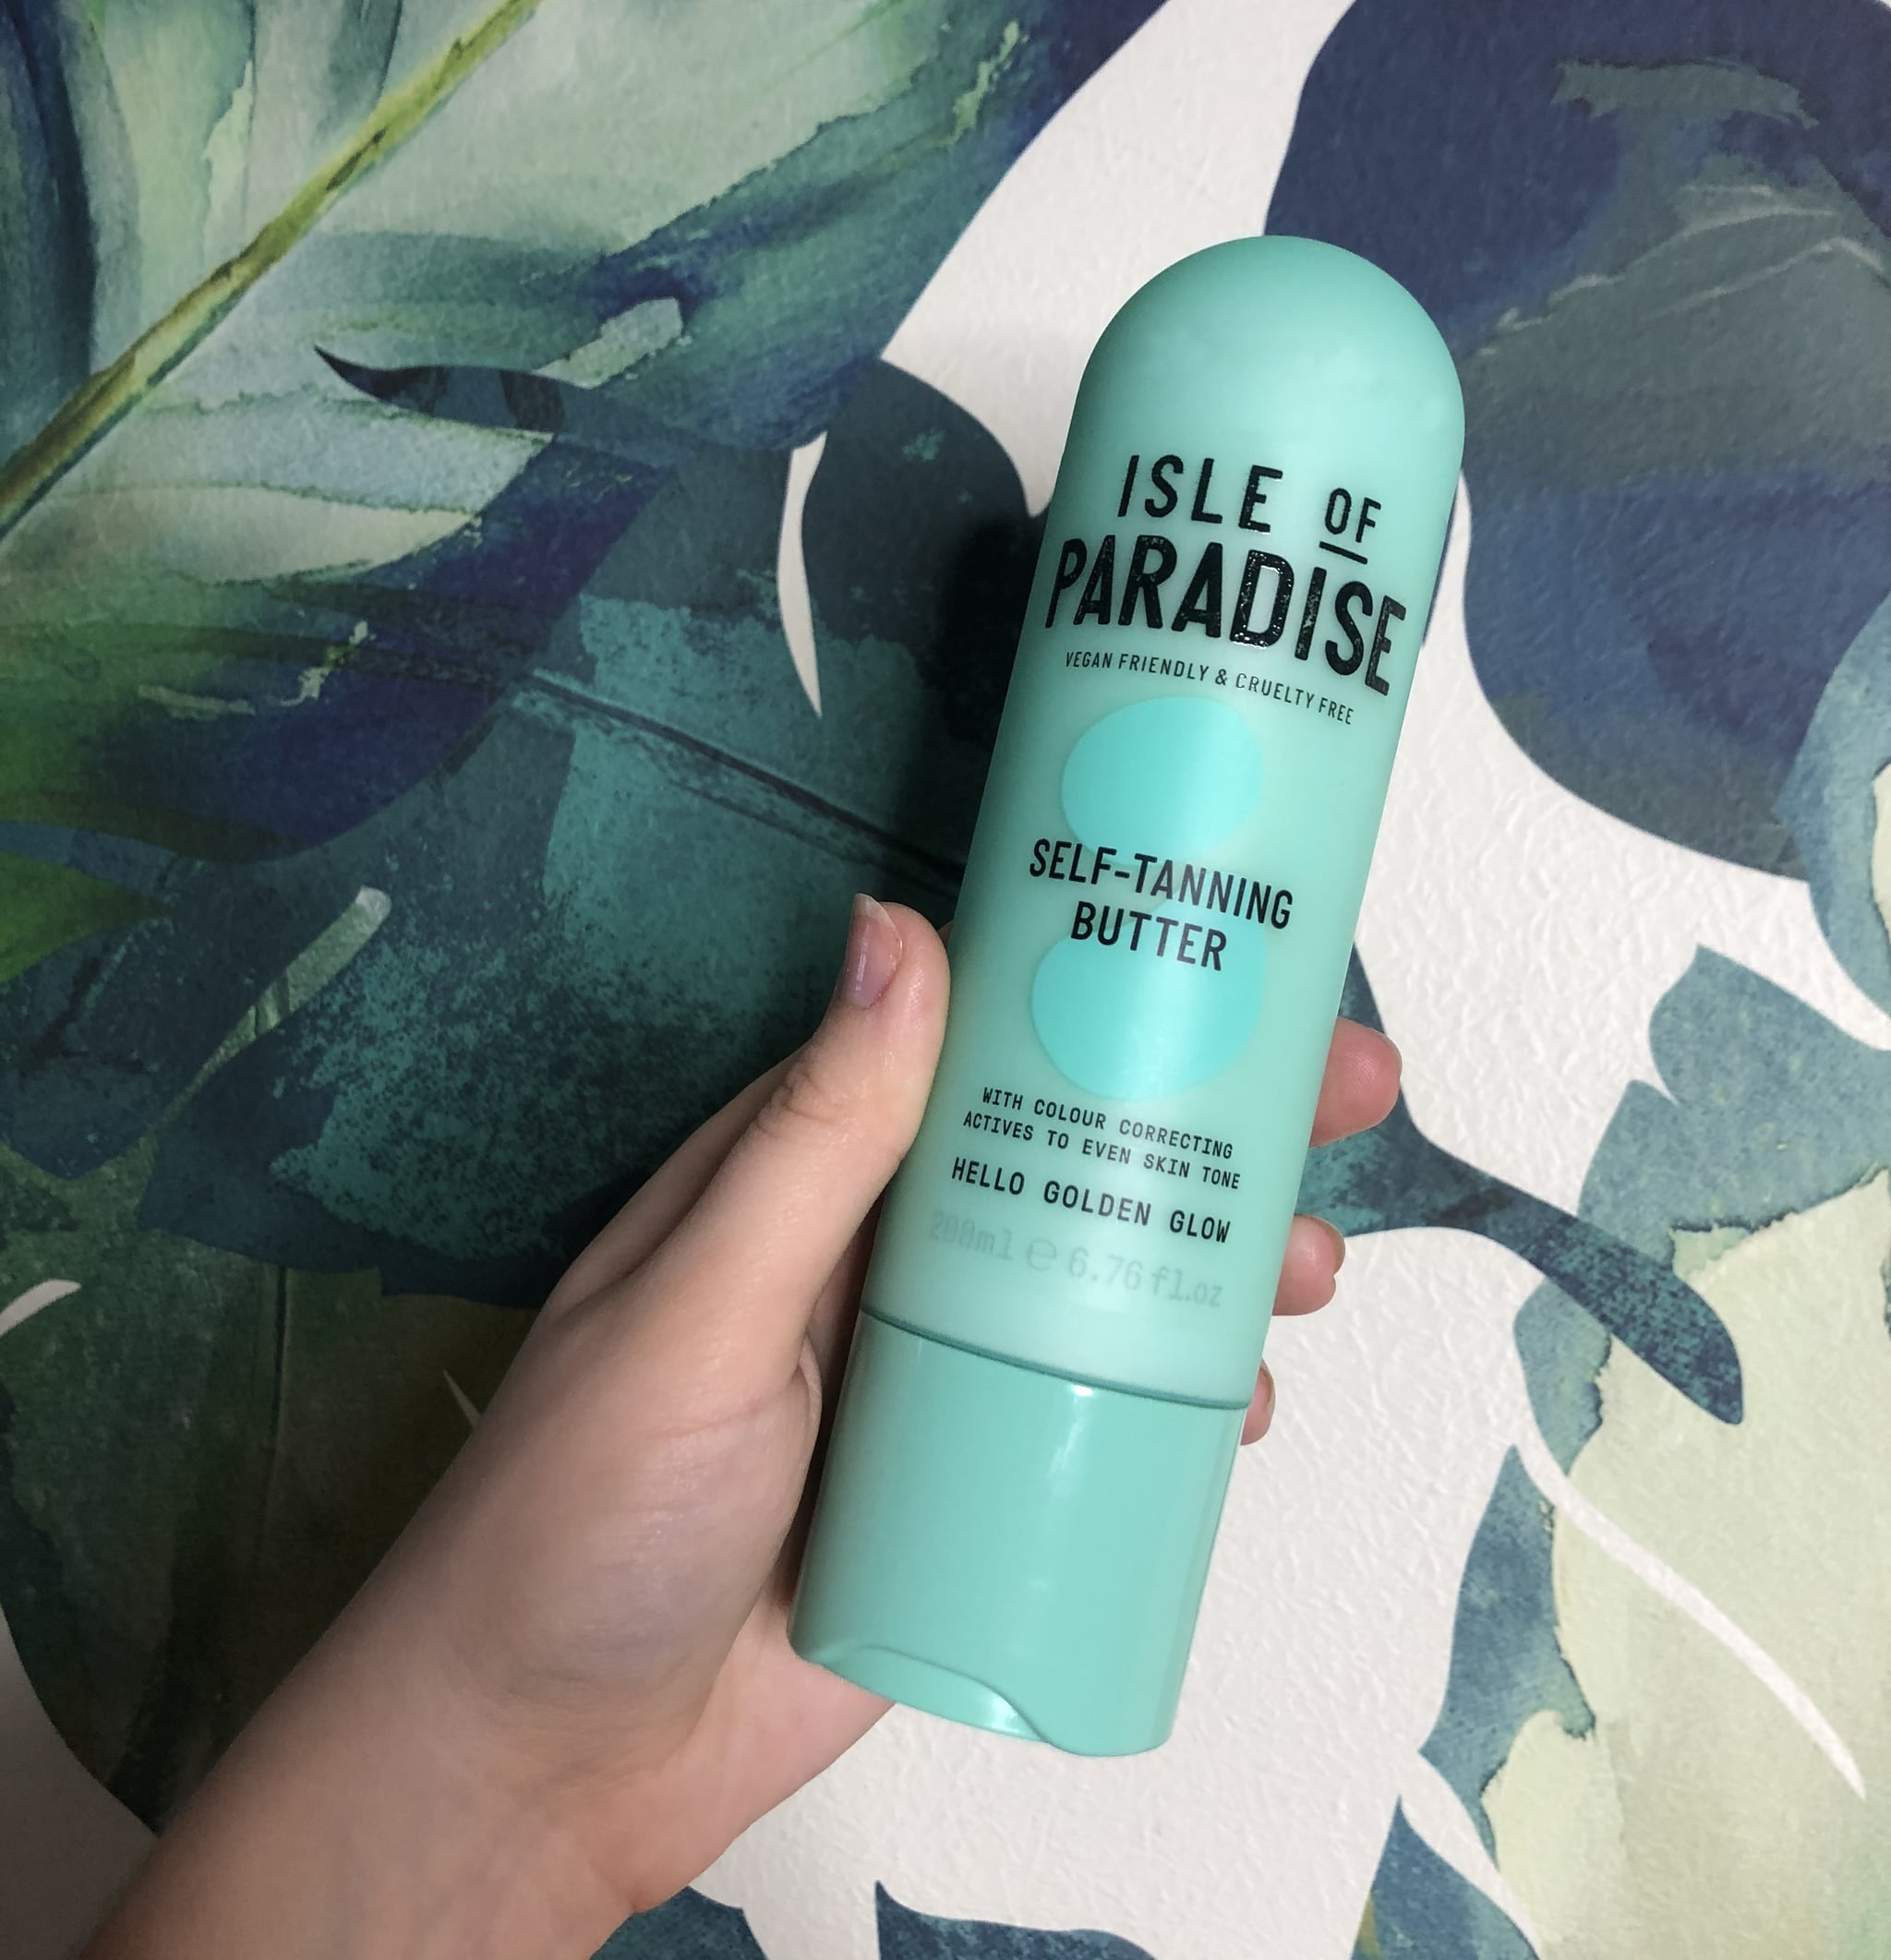 Exclusive: Isle of Paradise Self-Tanning Butter Review 5